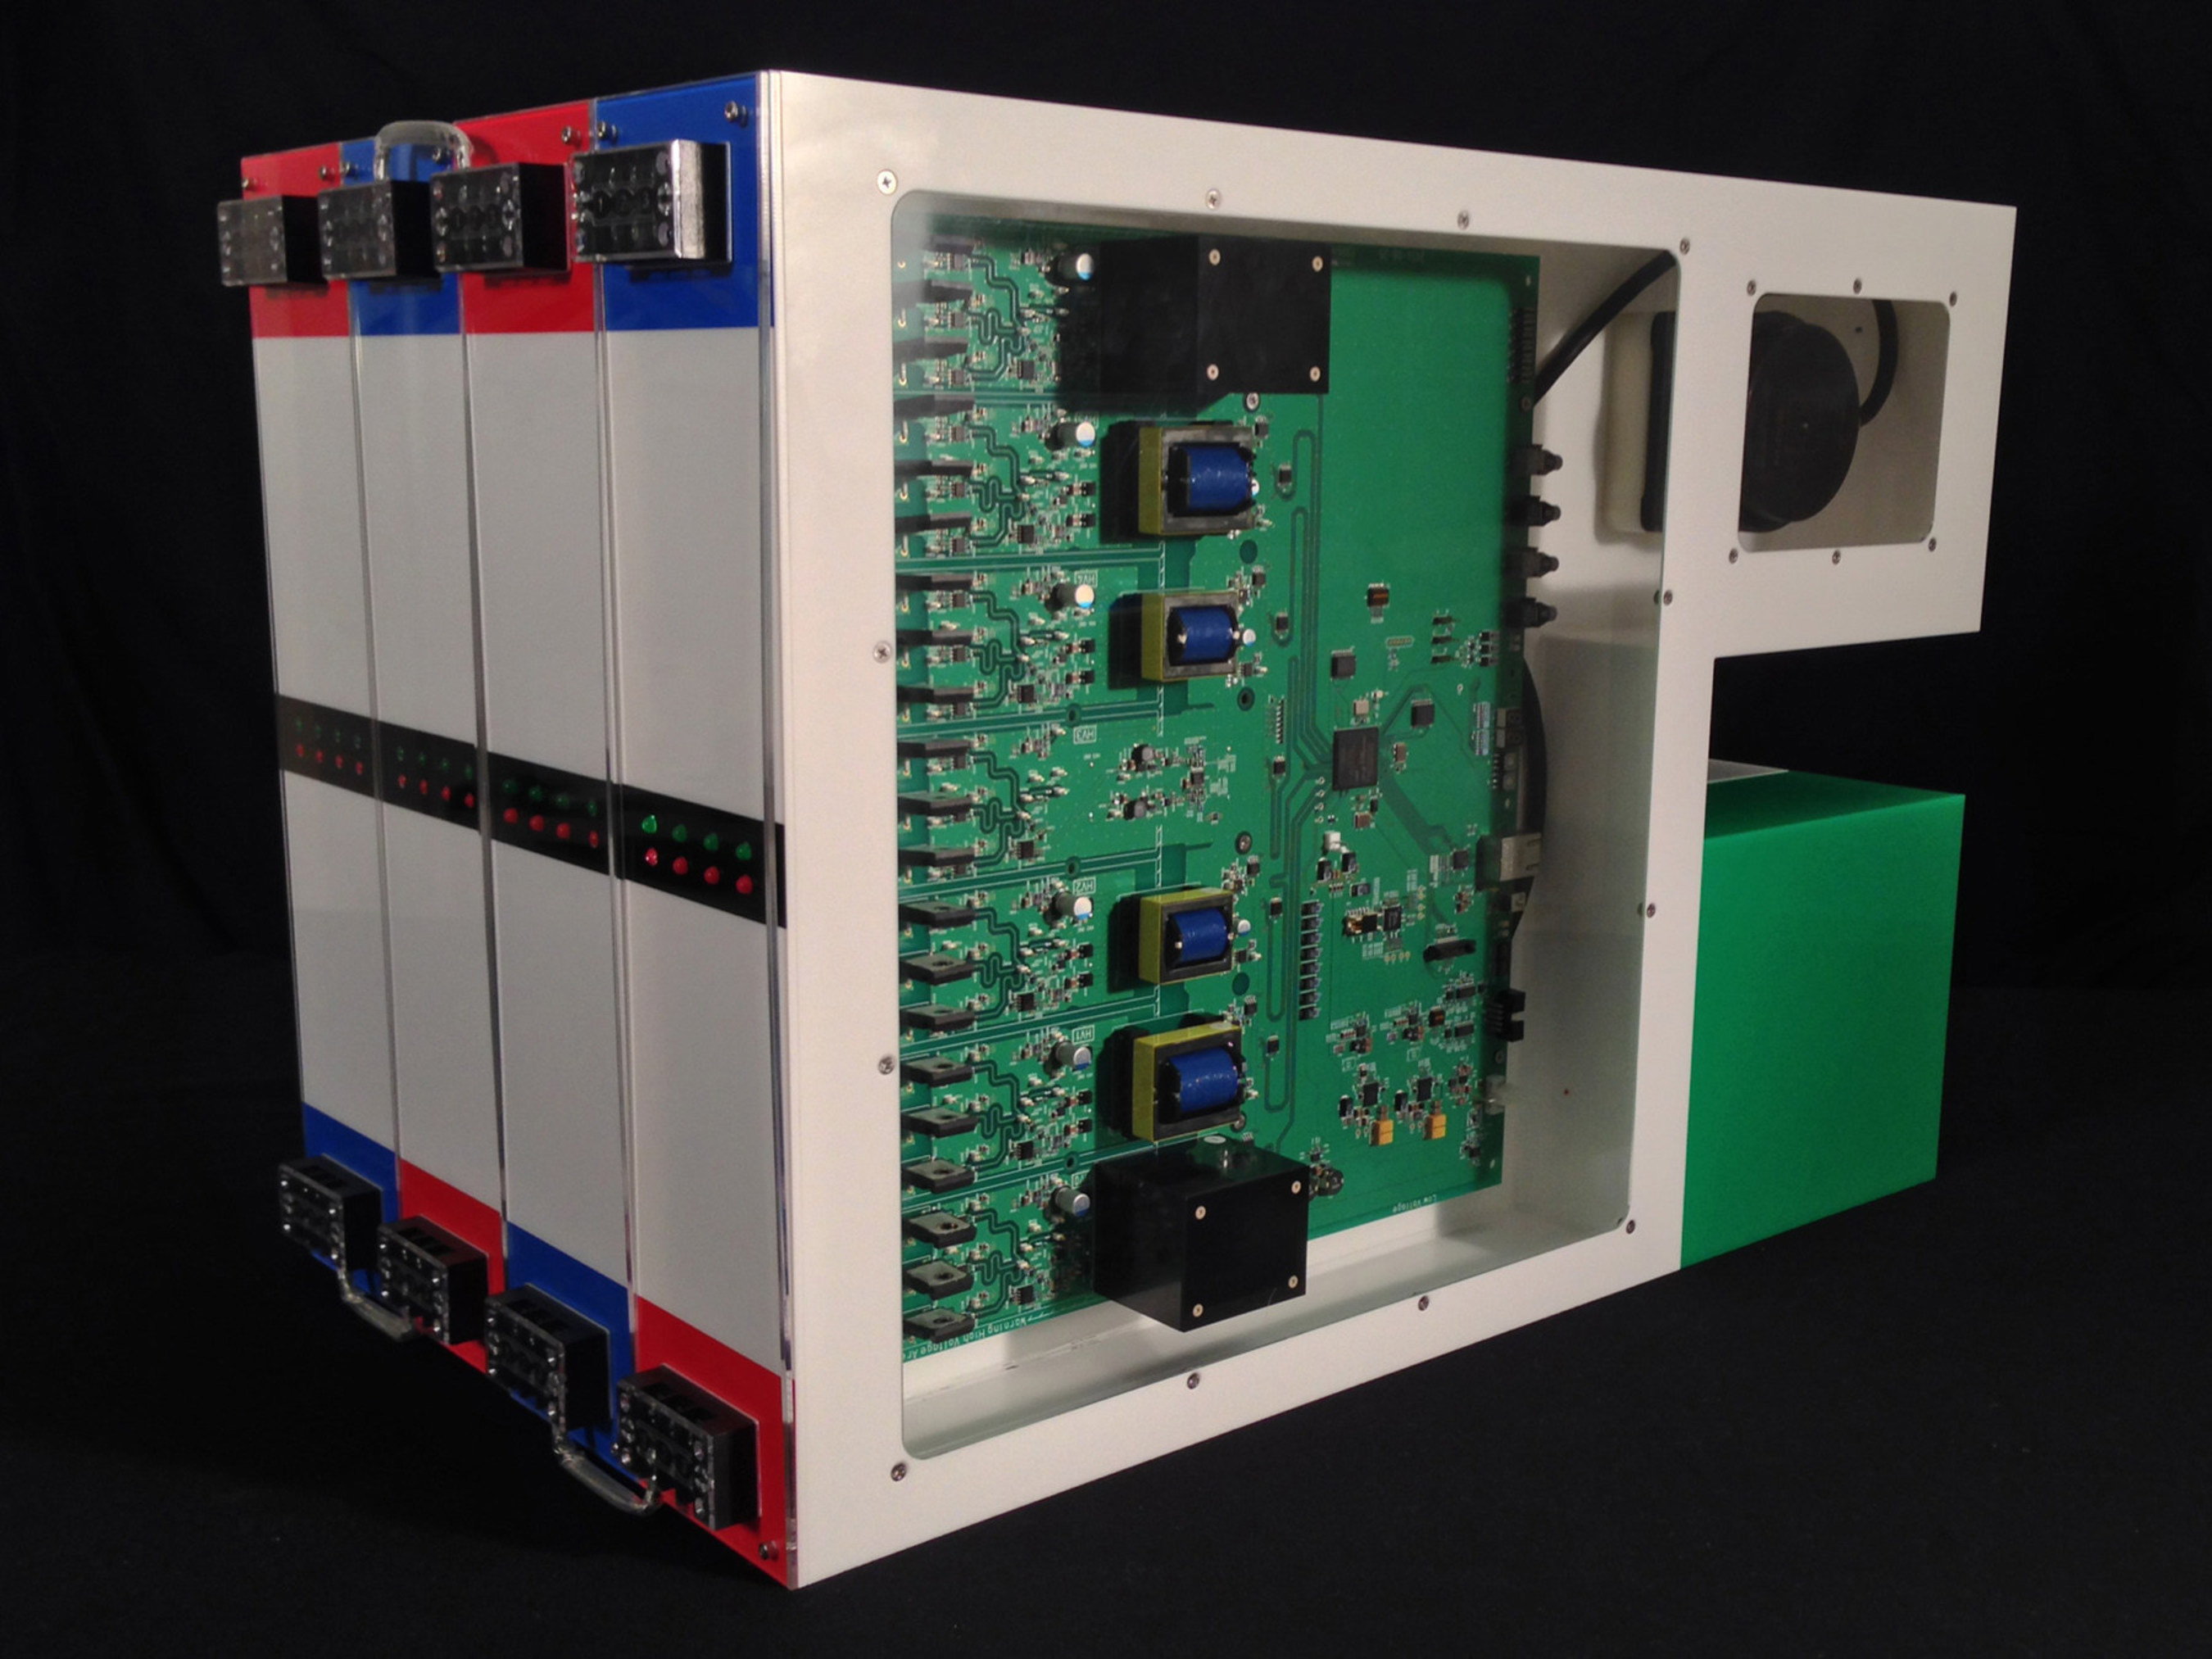 Fukushima SiC Applied Engineering Inc. has launched its ultra-high voltage pulse generators (SiC-Pulser Series) which ulitizes ROHM's SiC MOSFET SCT2080KE.